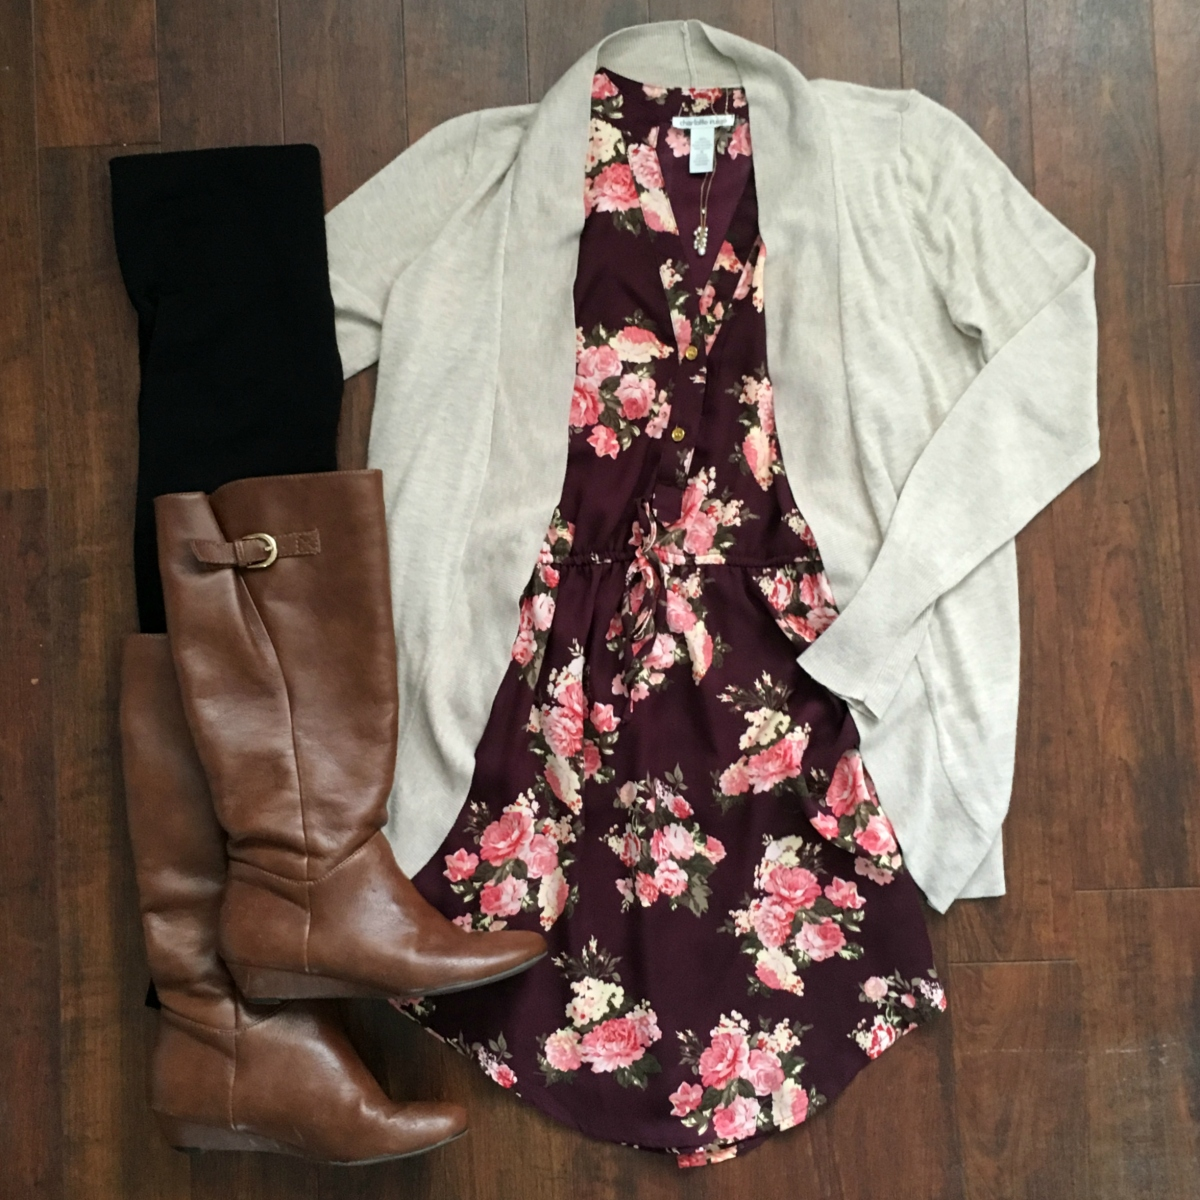 Floral dress with a boyfriend cardigan, leggings, and boots